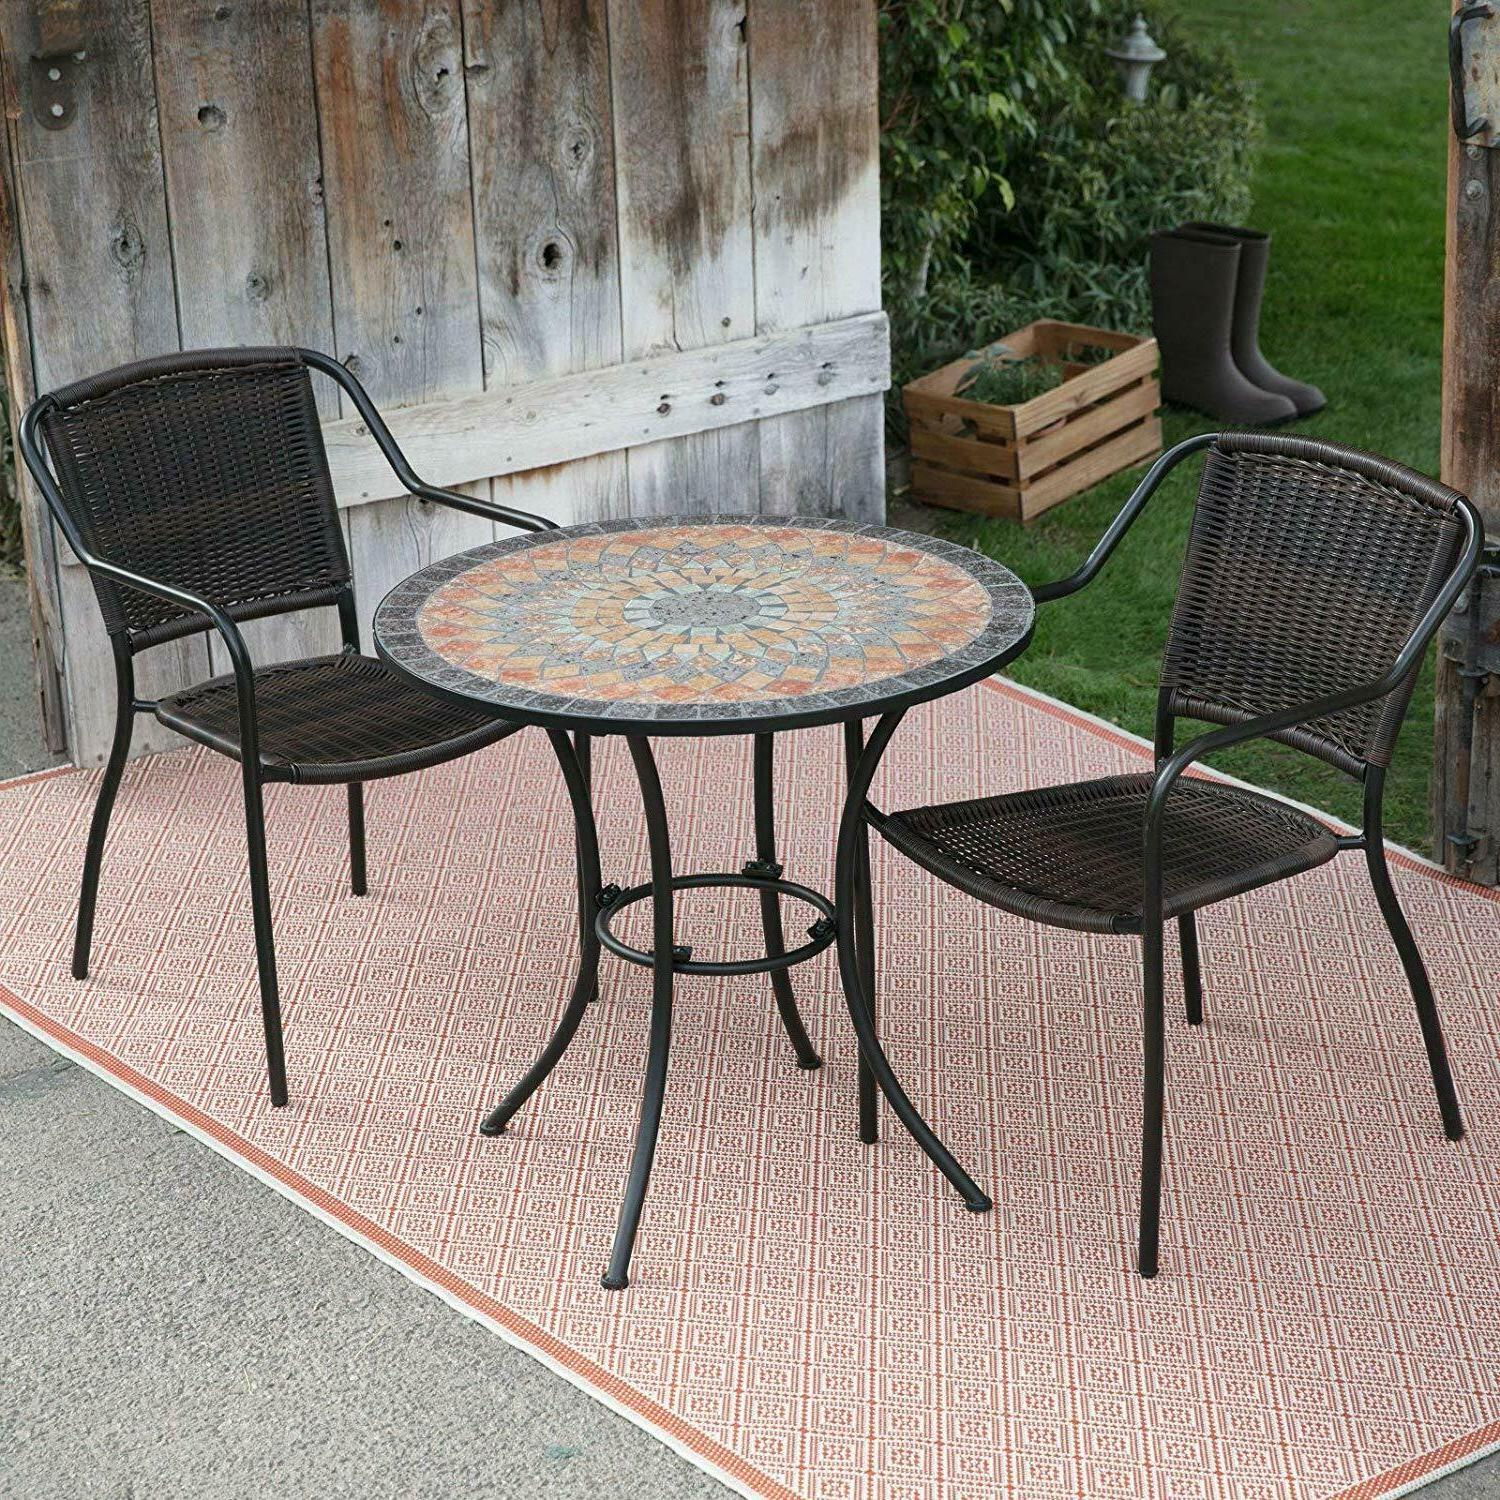 Mosaic Inlaid Stone 3 Piece Patio Bistro Set Small Space Out